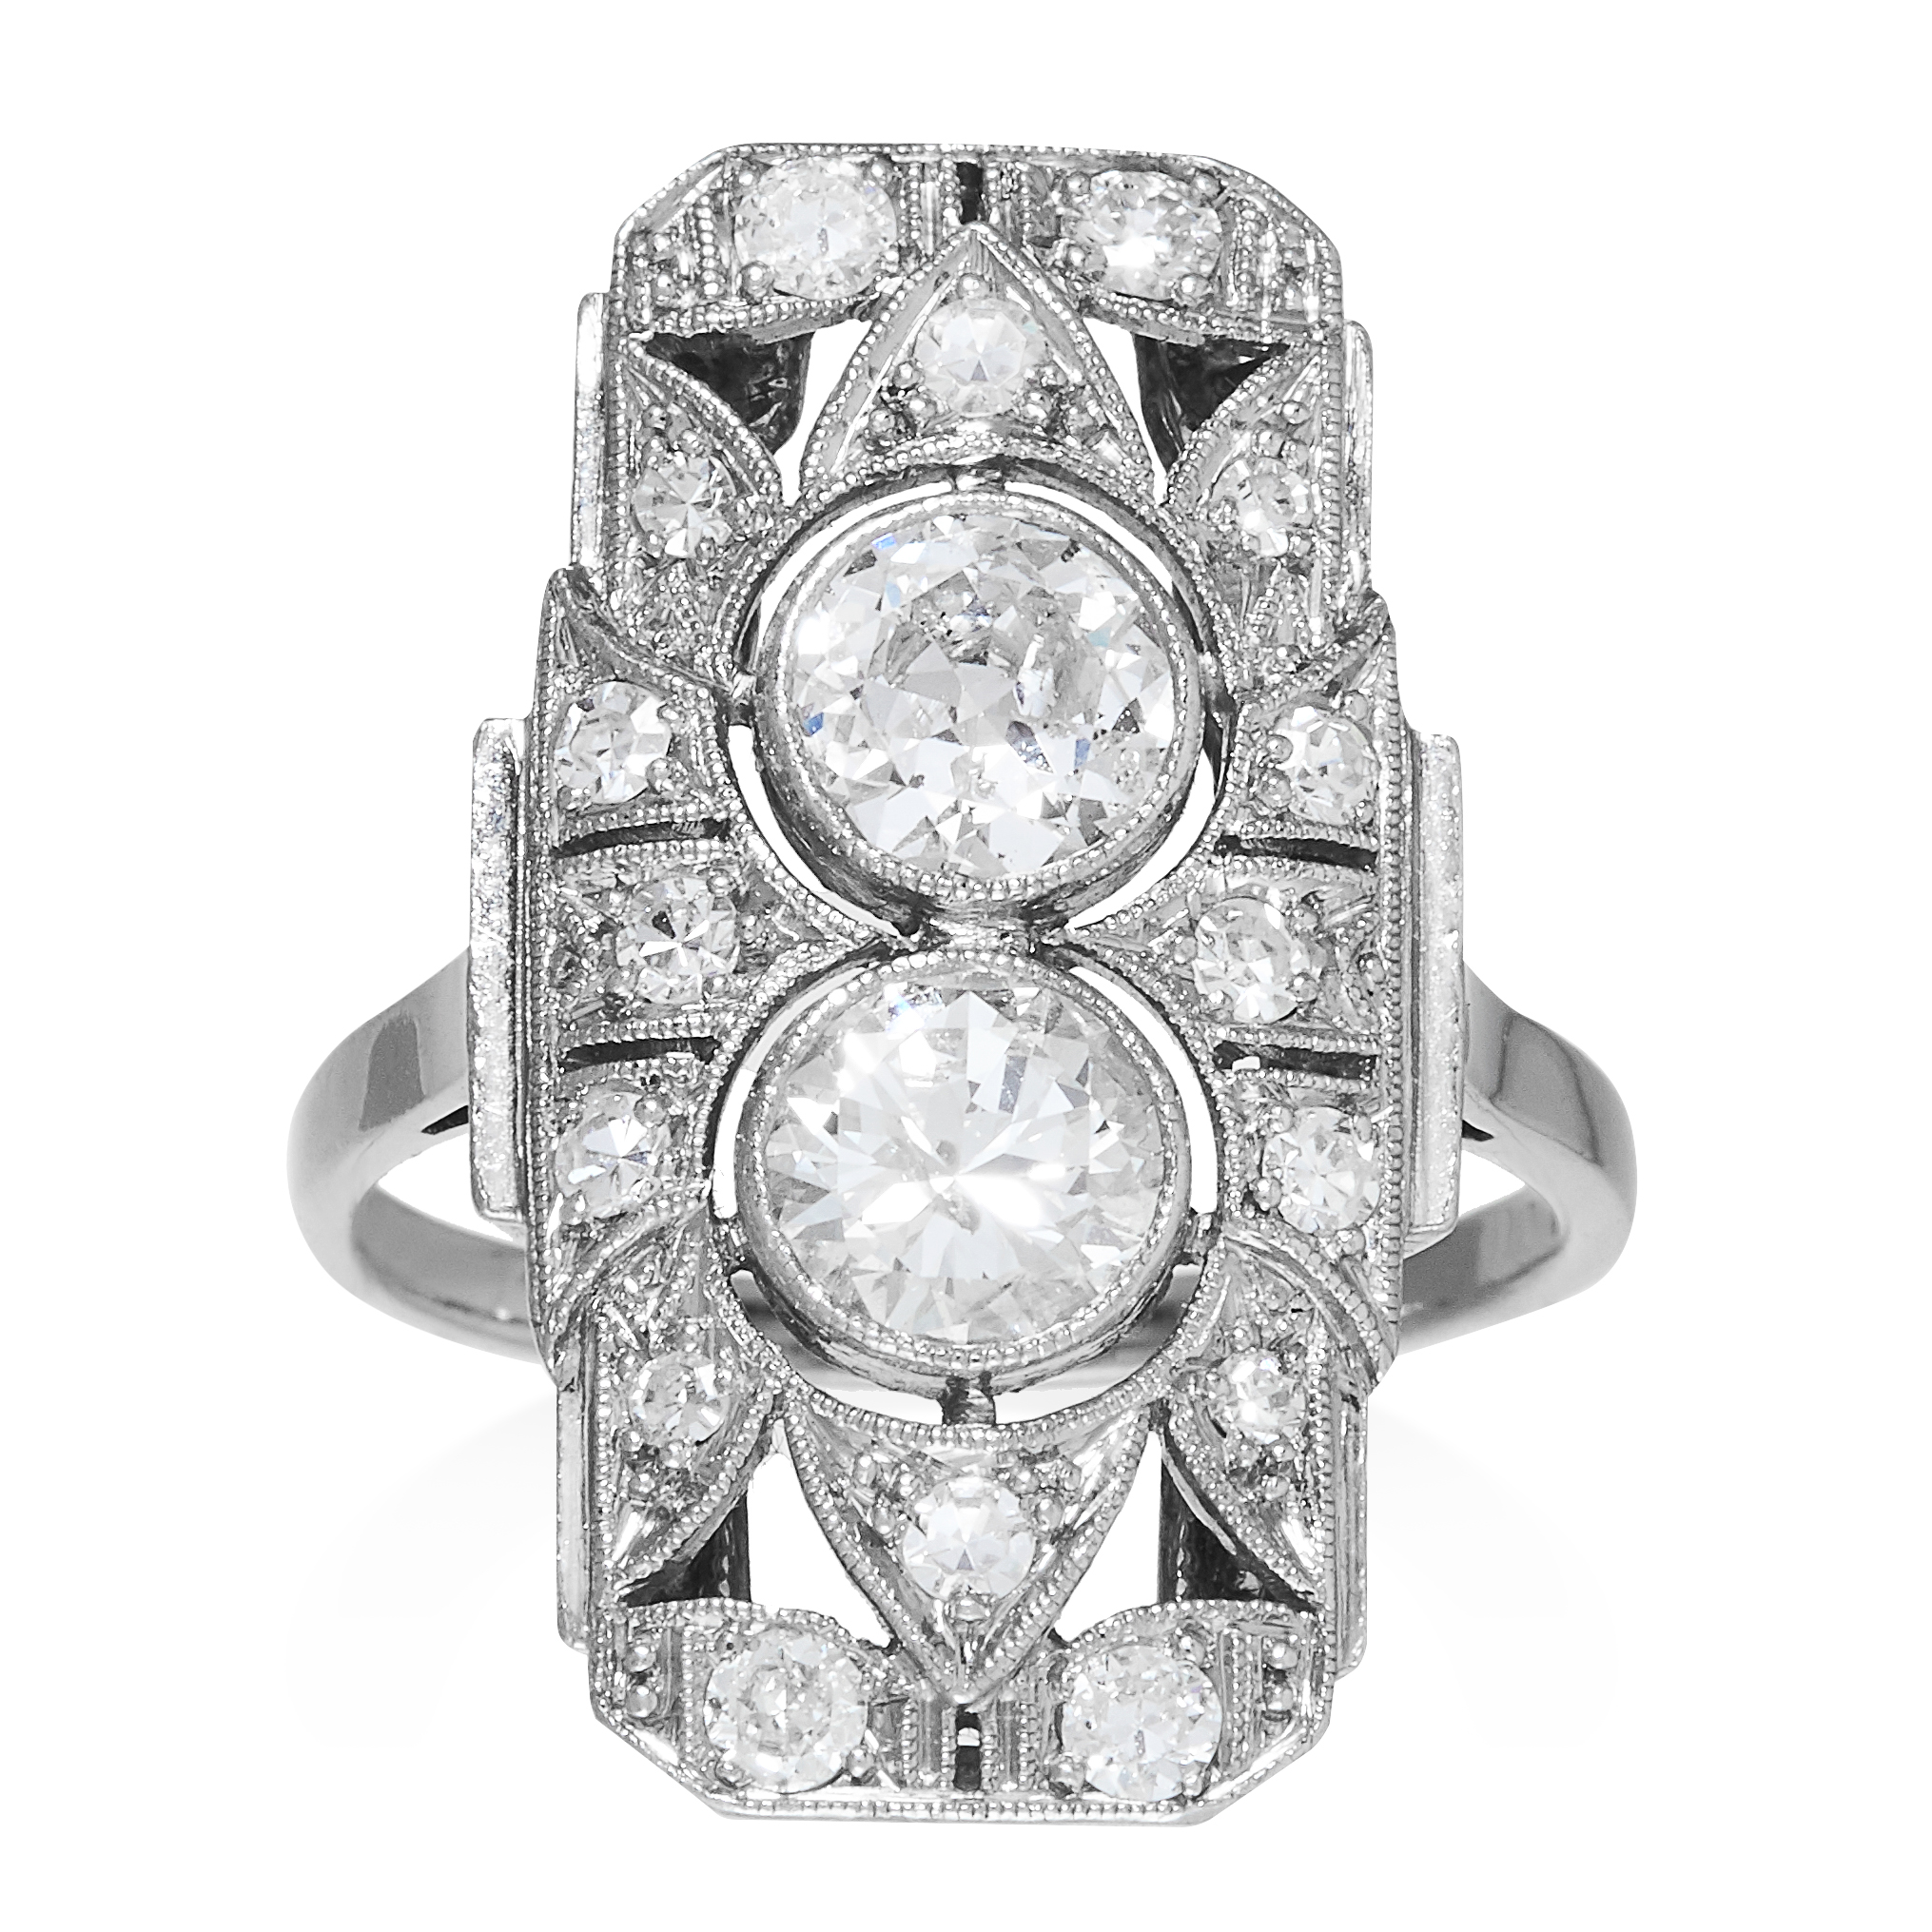 Los 20 - AN ART DECO DIAMOND RING CIRCA 1940 in platinum or white gold, set with two round cut diamonds of